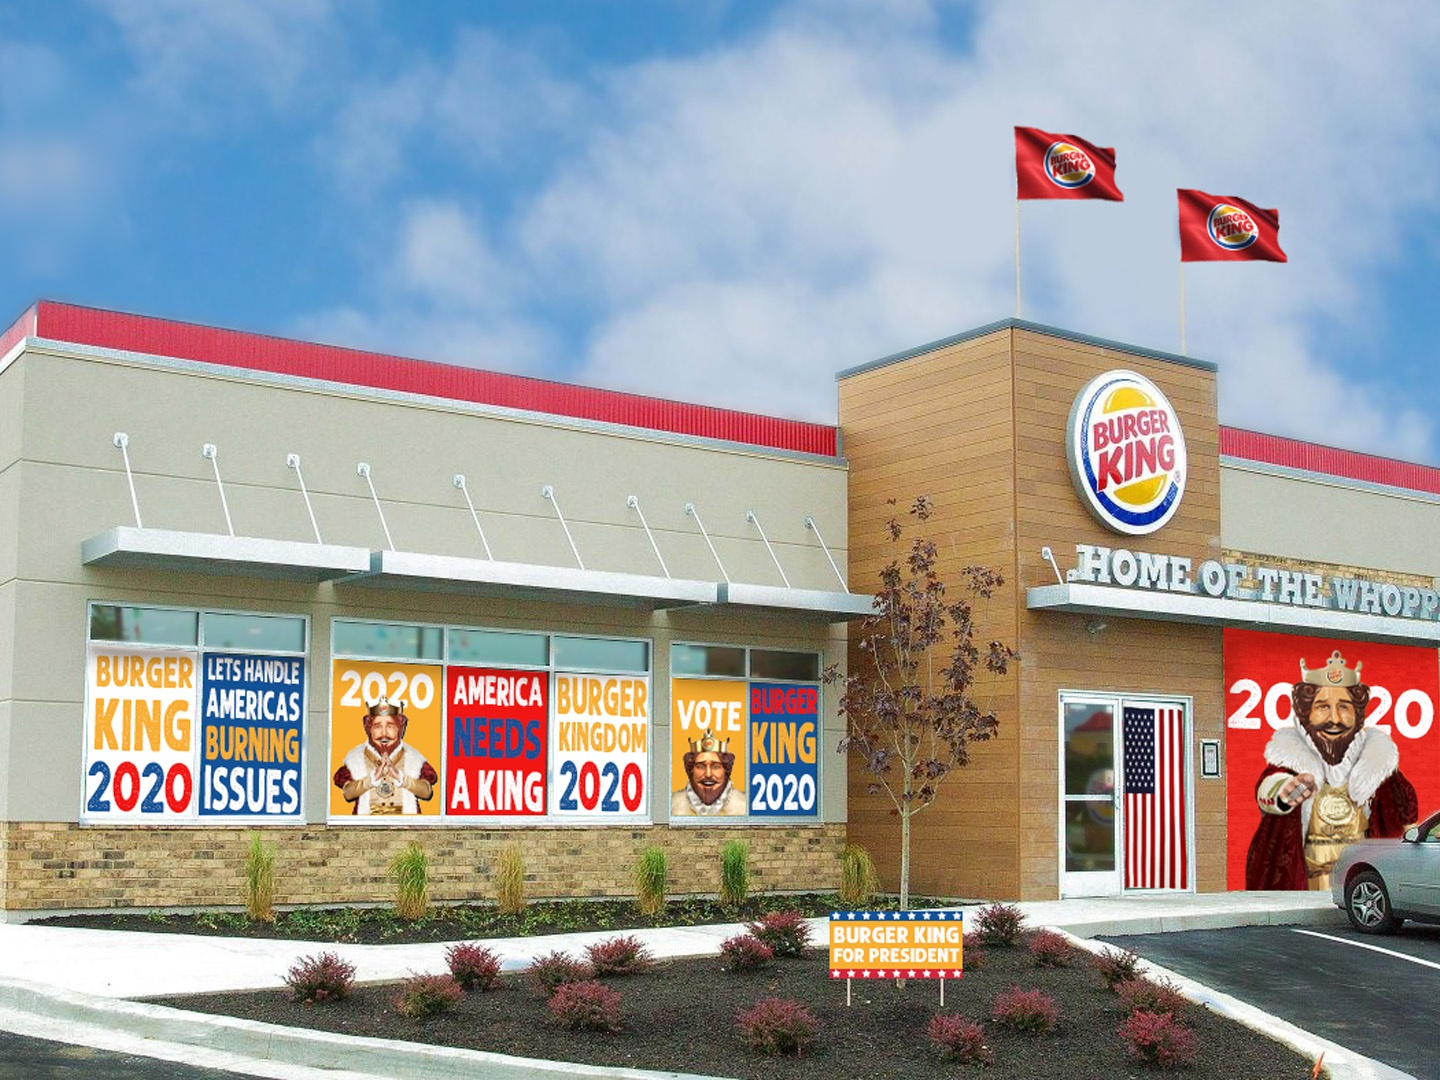 Burger King 2020 Thumbnail